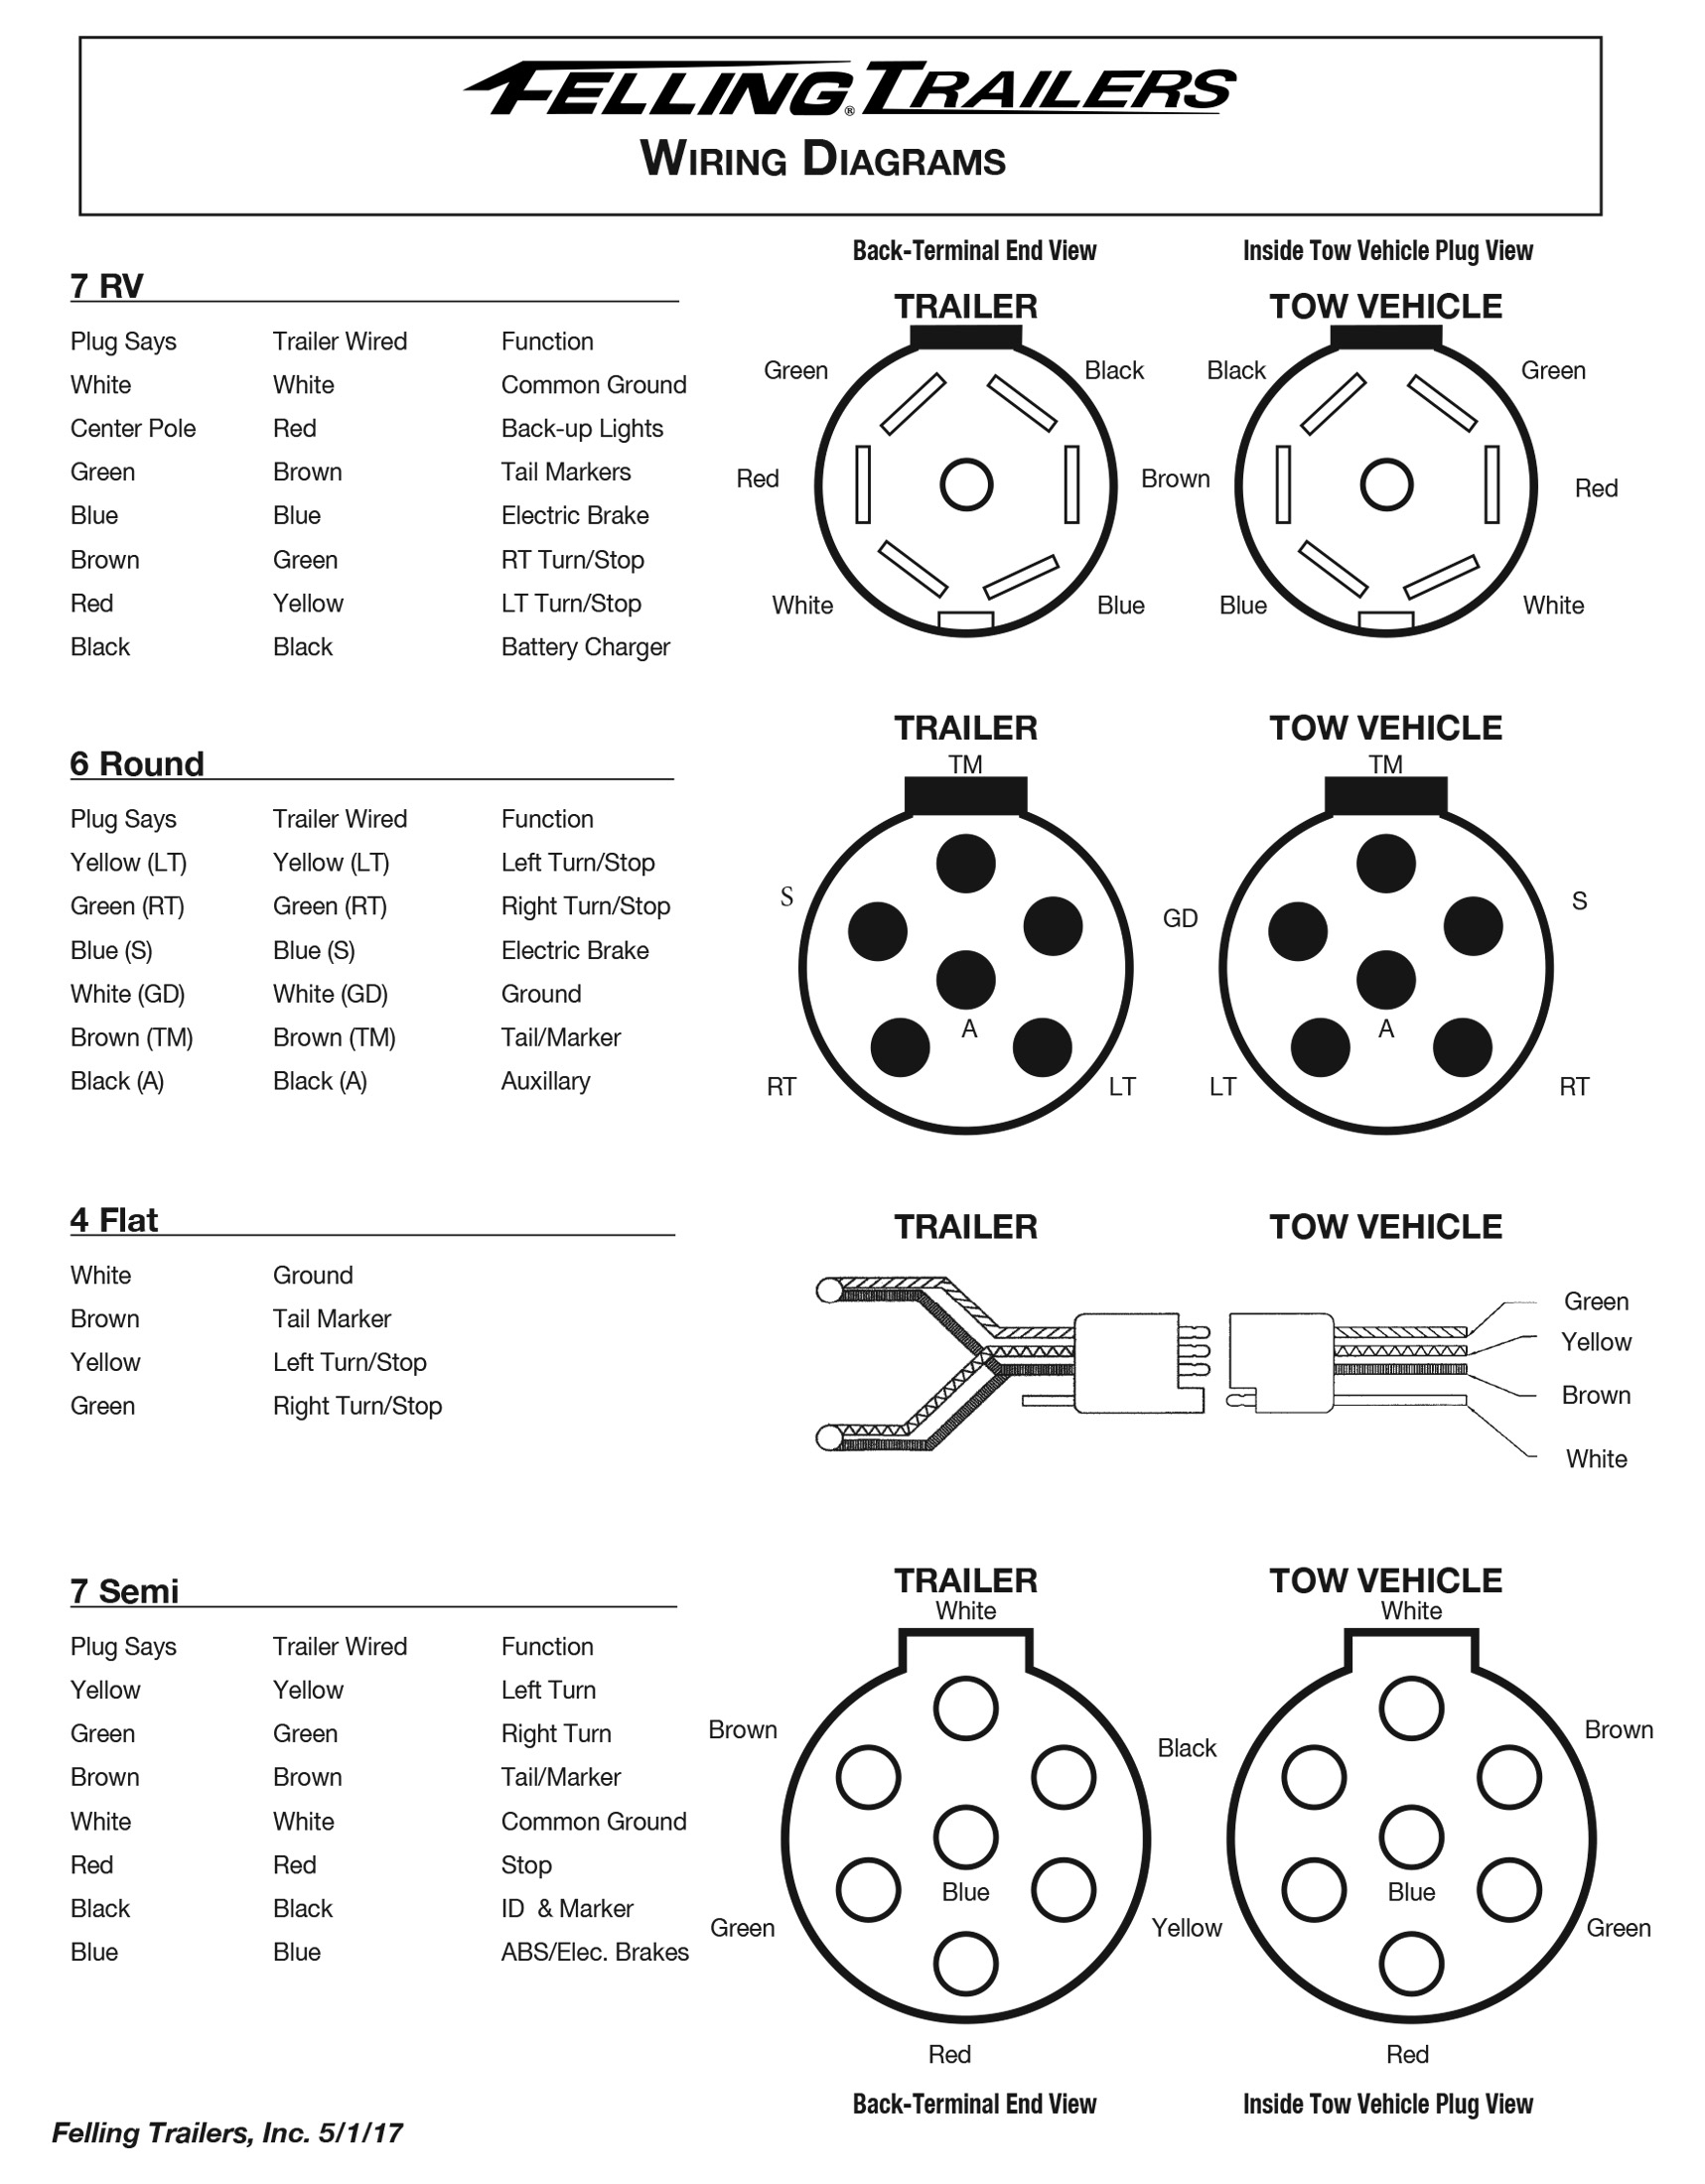 Service- Felling Trailers Wiring Diagrams, Wheel Toque - 4 Flat Wiring Diagram